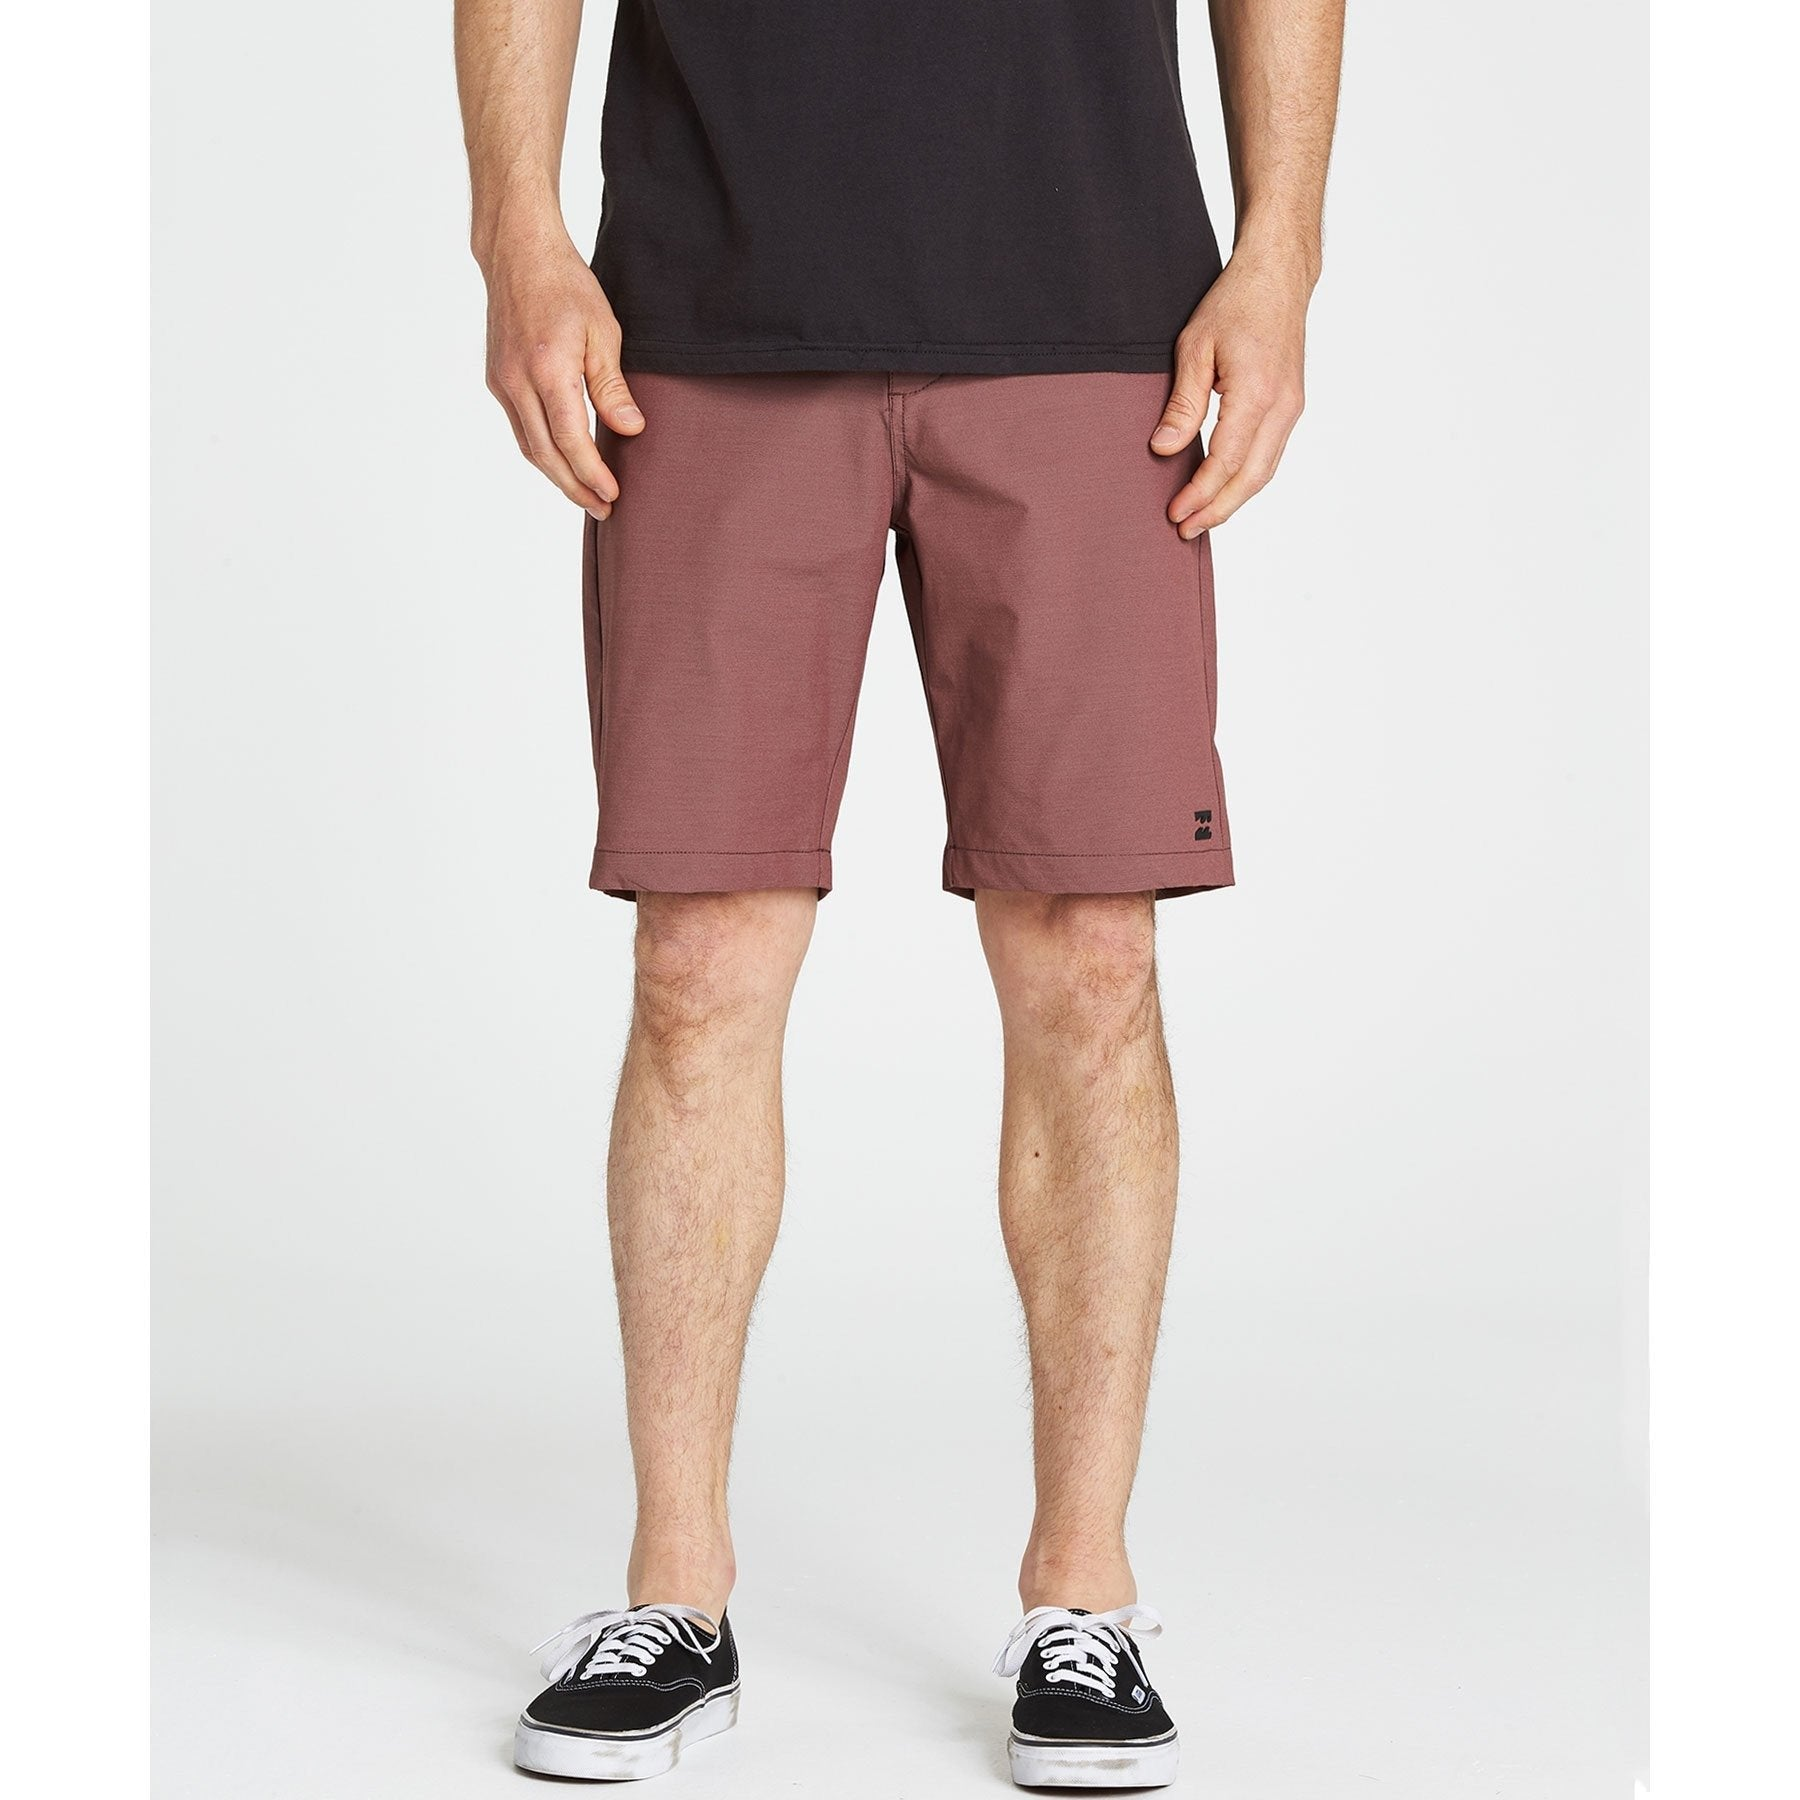 Billabong Crossfire X Twill Shorts - 88 Gear